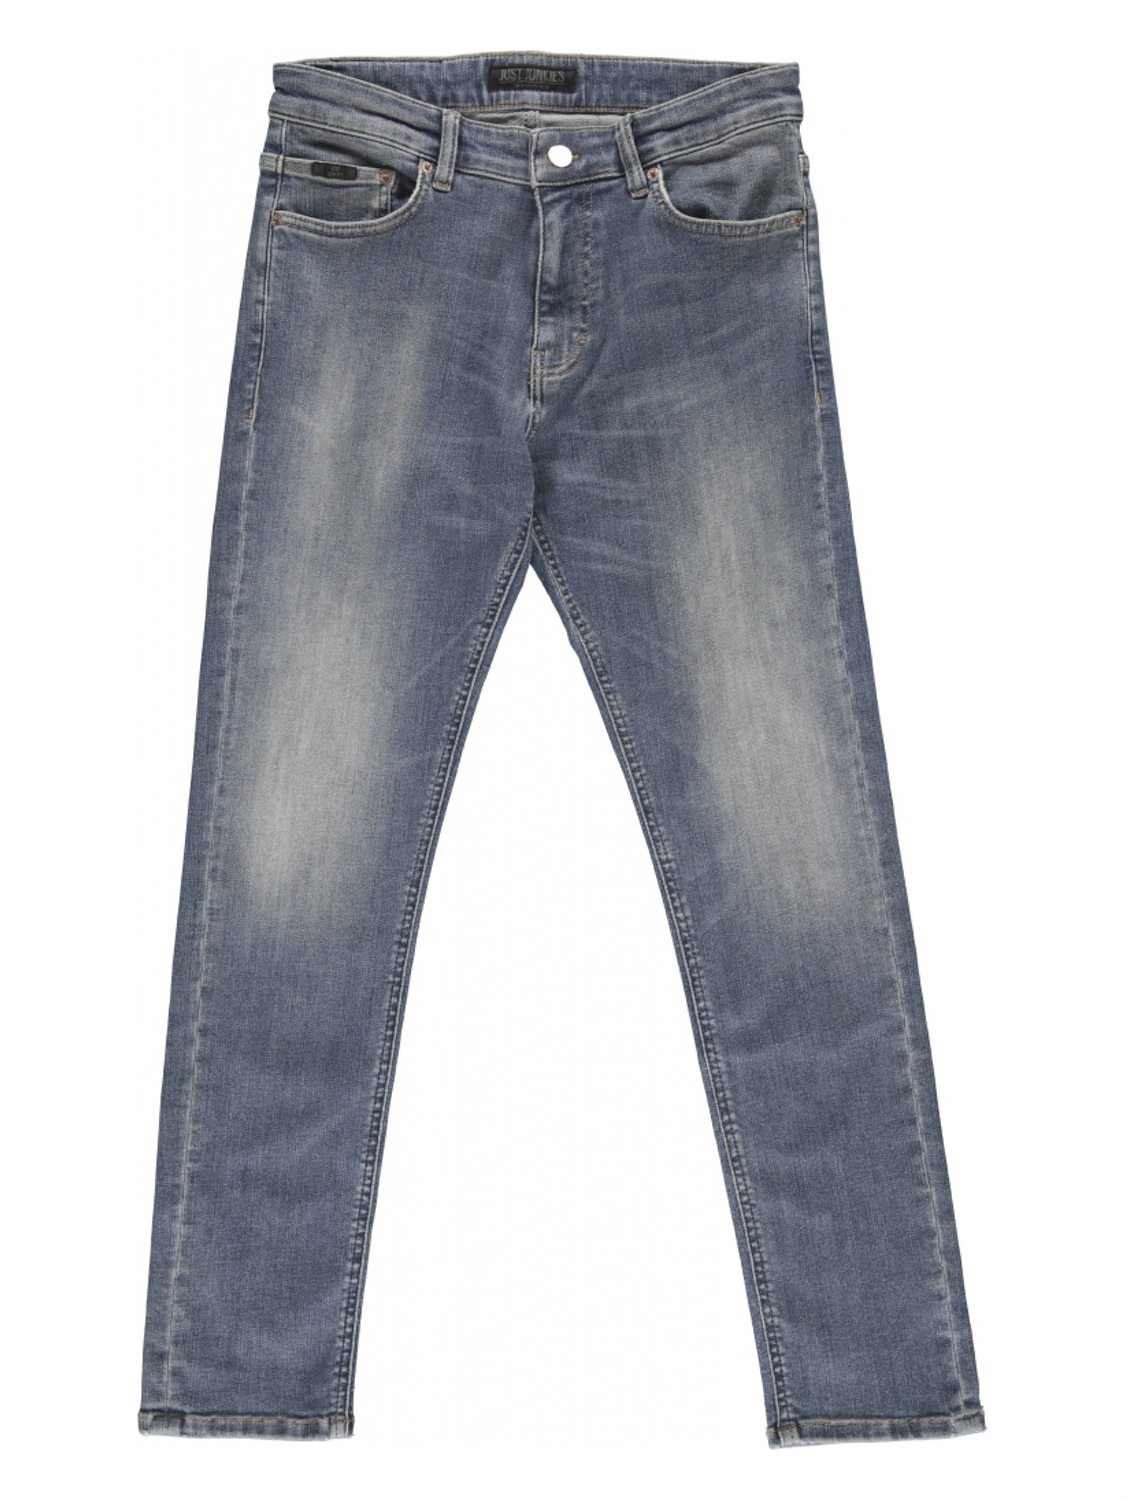 Just junkies Jeans - Jeff JJ1465 | GATE36 Hobro